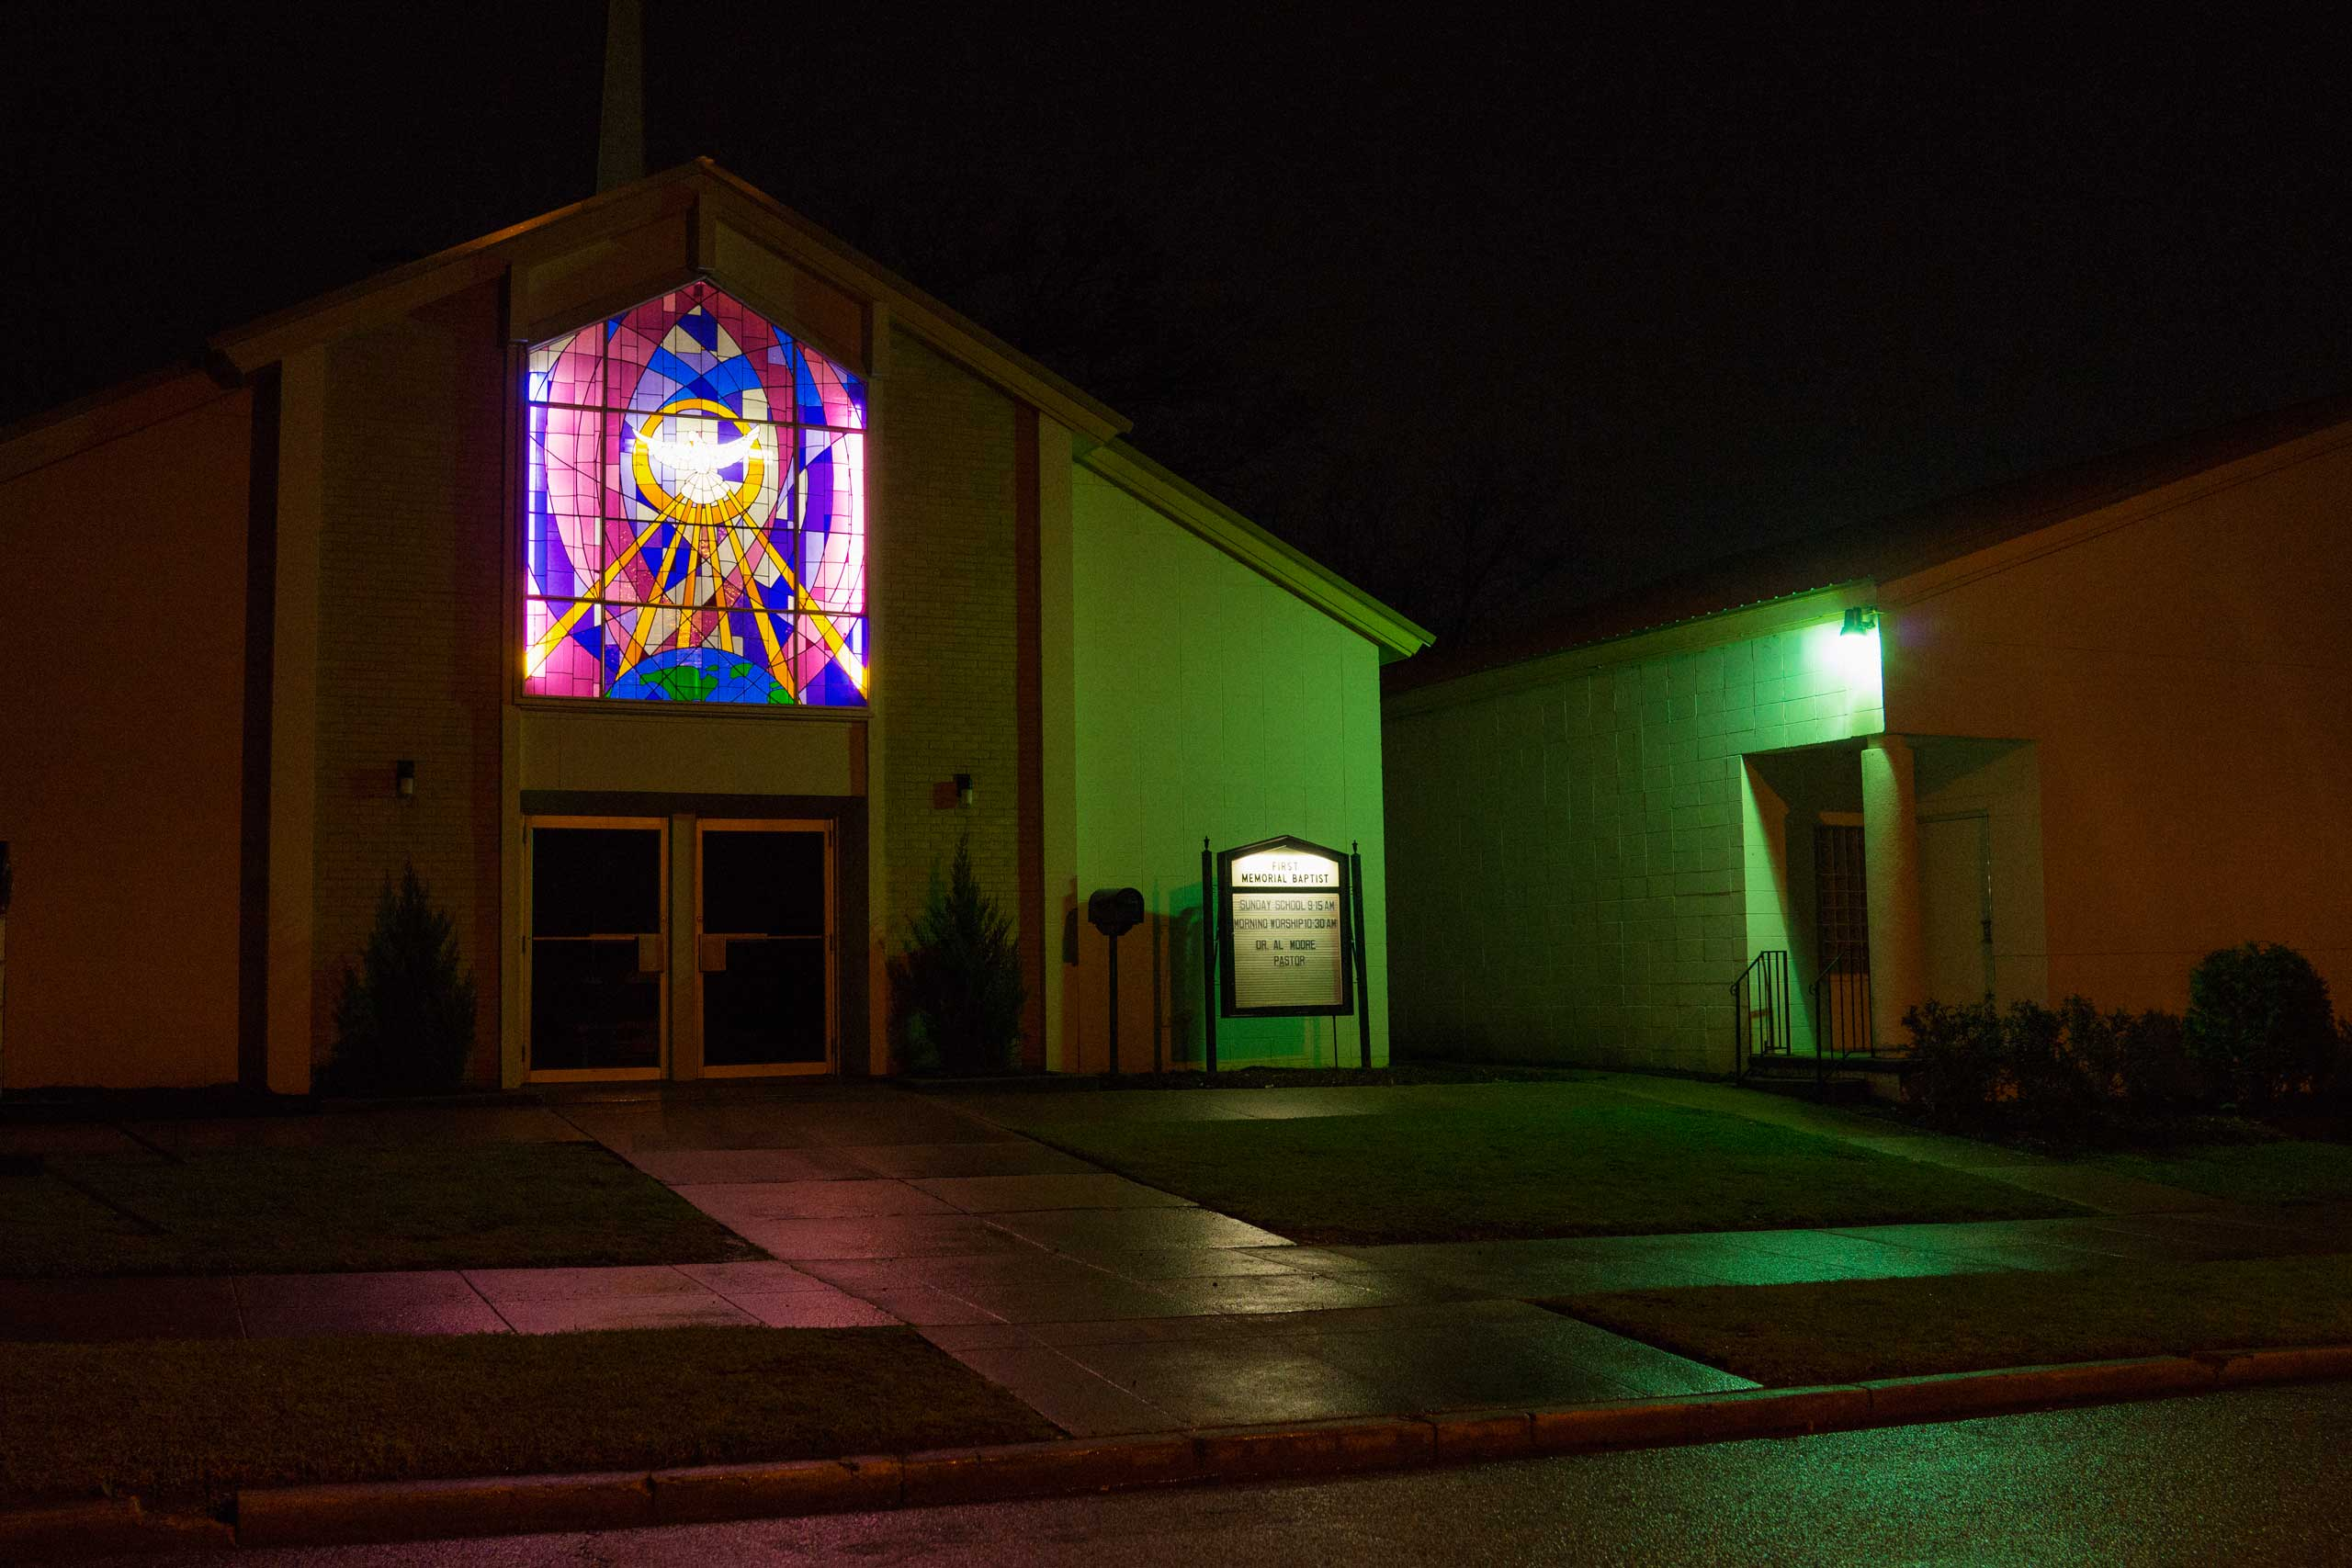 The stained glass glows at night from inside the First Memorial Baptist Church in Birmingham, Ala. on March 21, 2015.